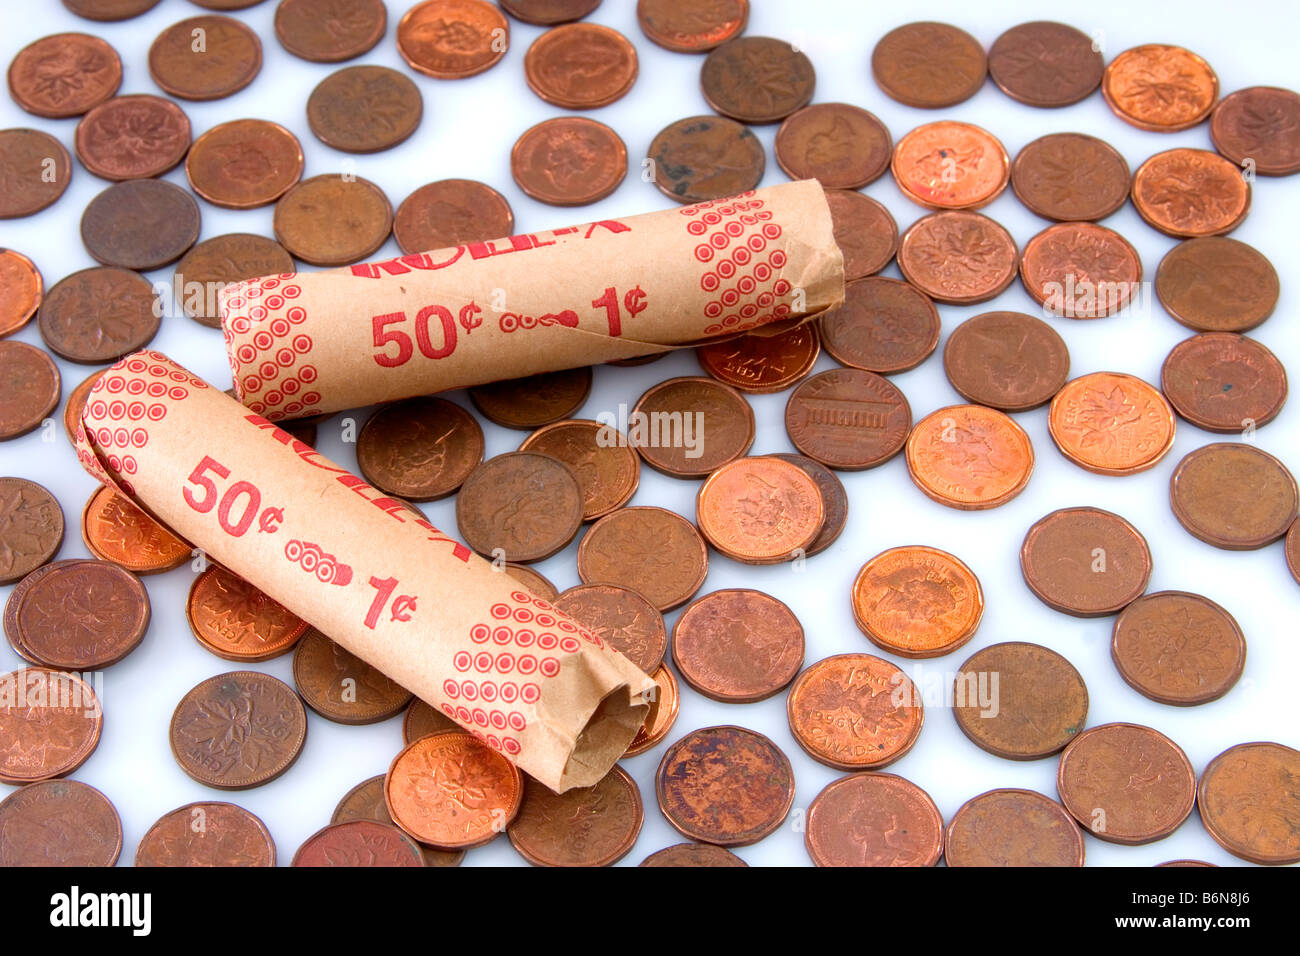 Concept of paper coin rollers amoung pennies on white background symbolizing lean times - Stock Image